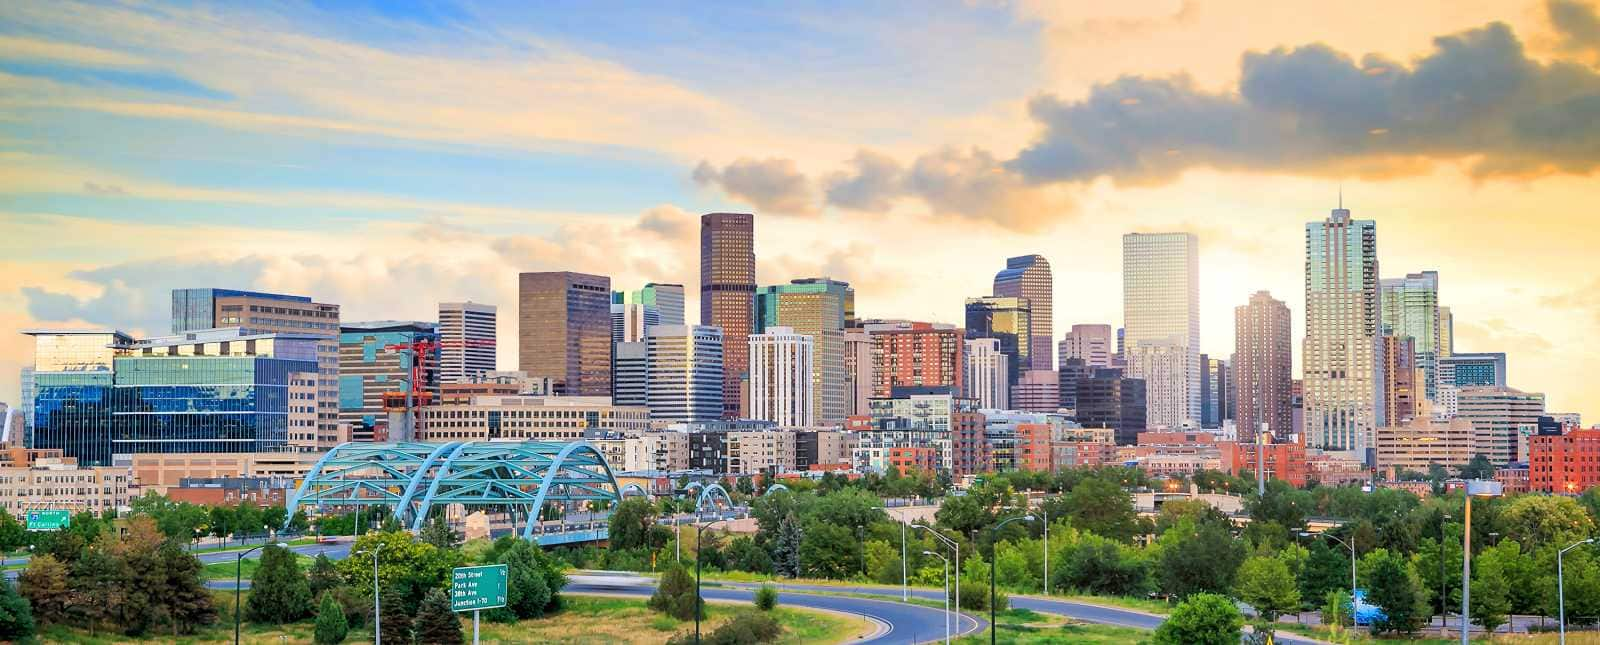 Sioux Falls South Dakota to Denver or Vice Versa $113 RT Nonstop on United Airlines BE (Limited Travel November-March 2020)